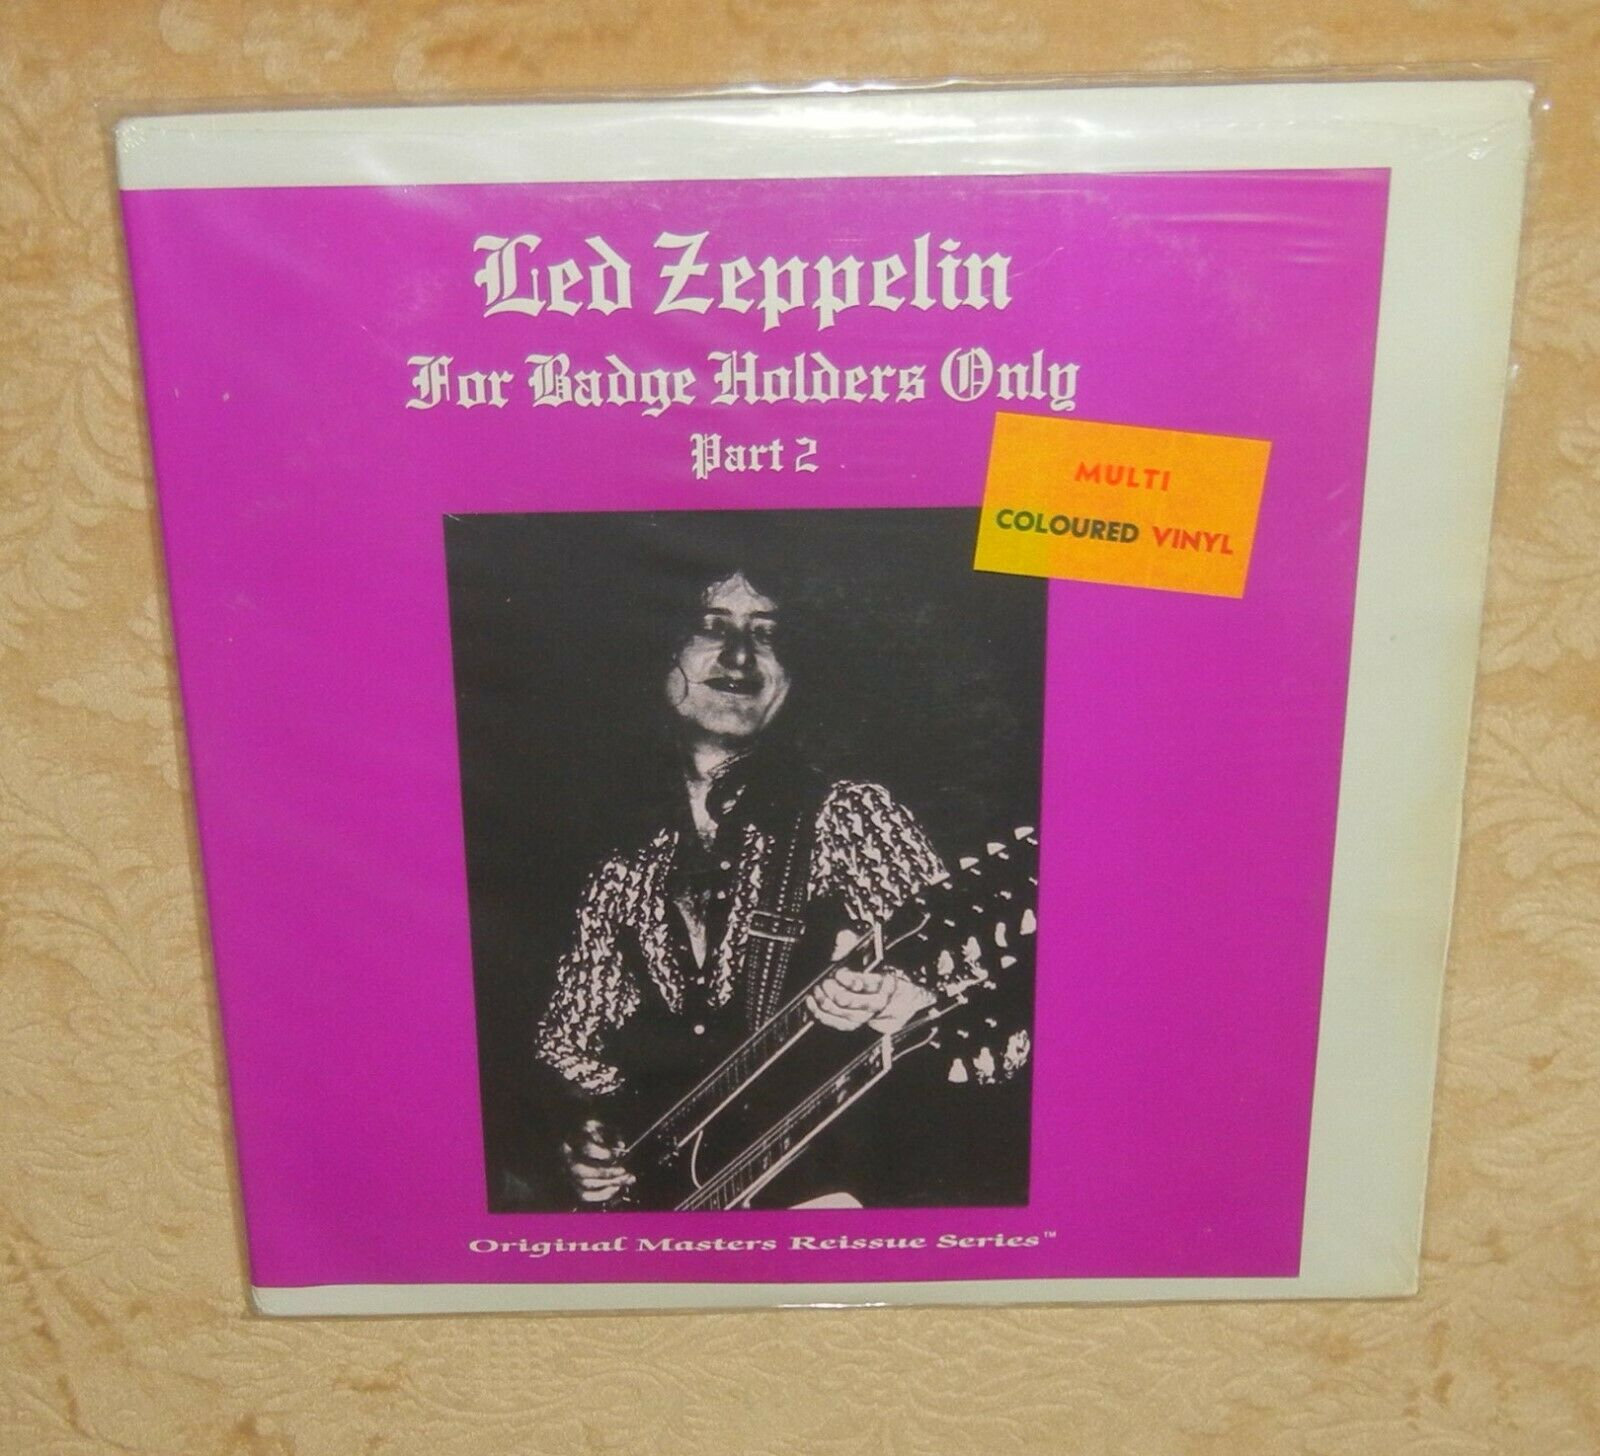 LED ZEPPELIN  FOR BADGE HOLDERS ONLY PART 2  DOUBLE ON MULTI  COLORED VINYL